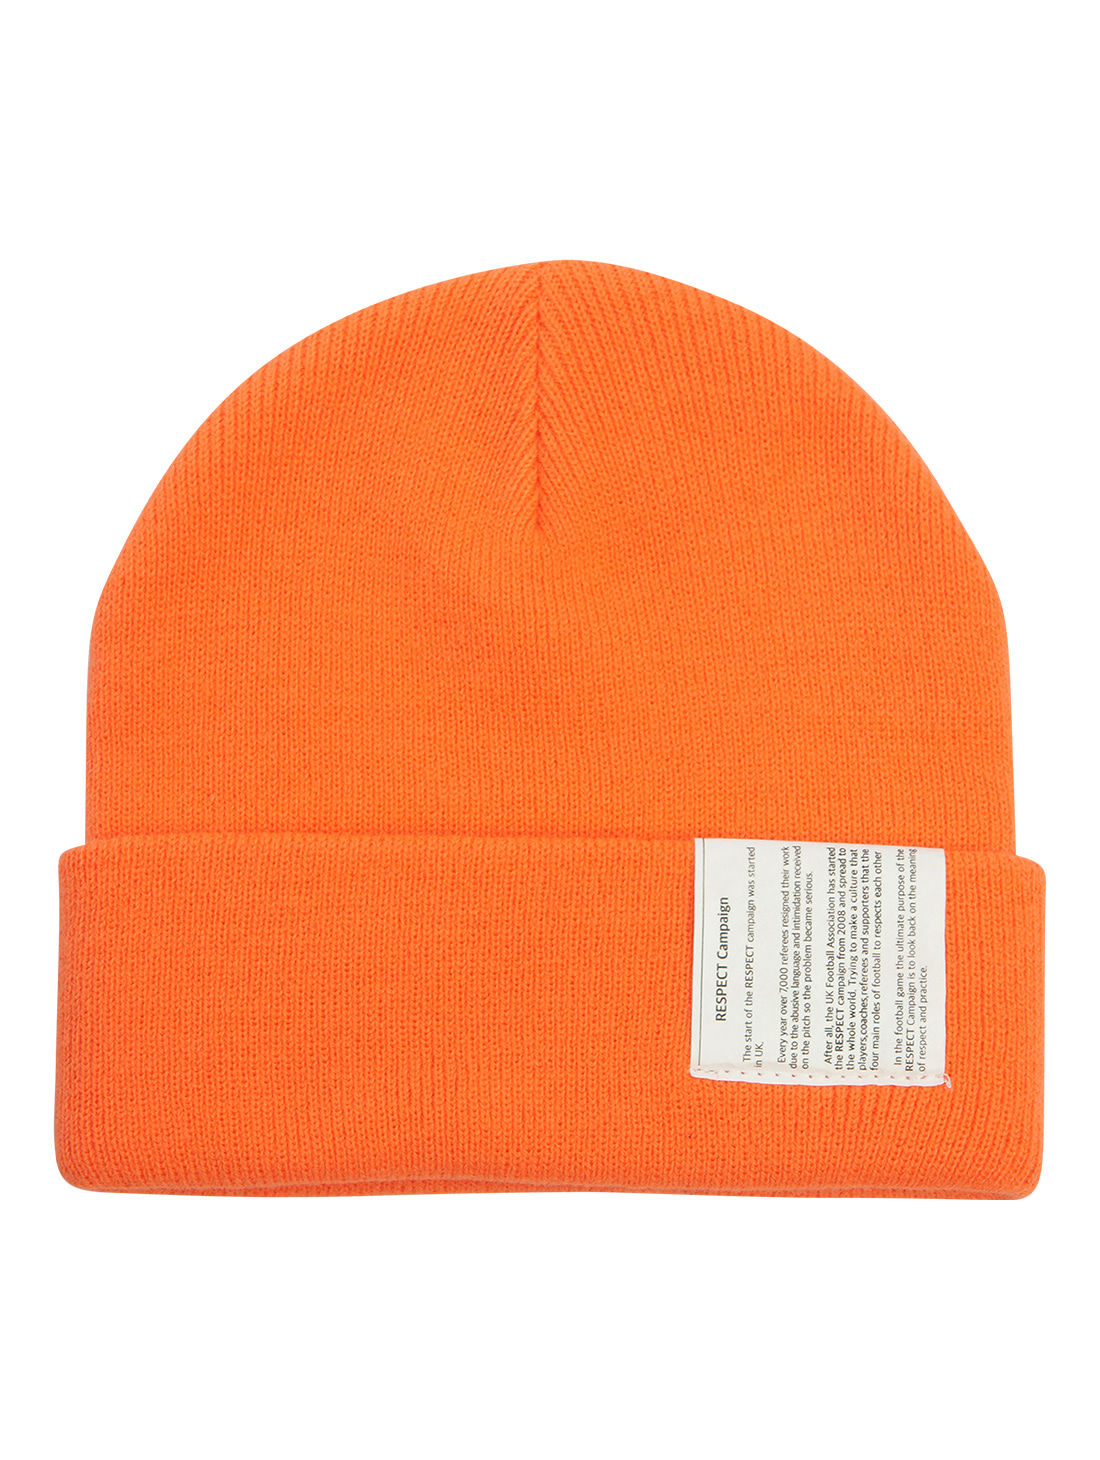 GOALSTUDIO RESPECT LABEL BEANIE - ORANGE